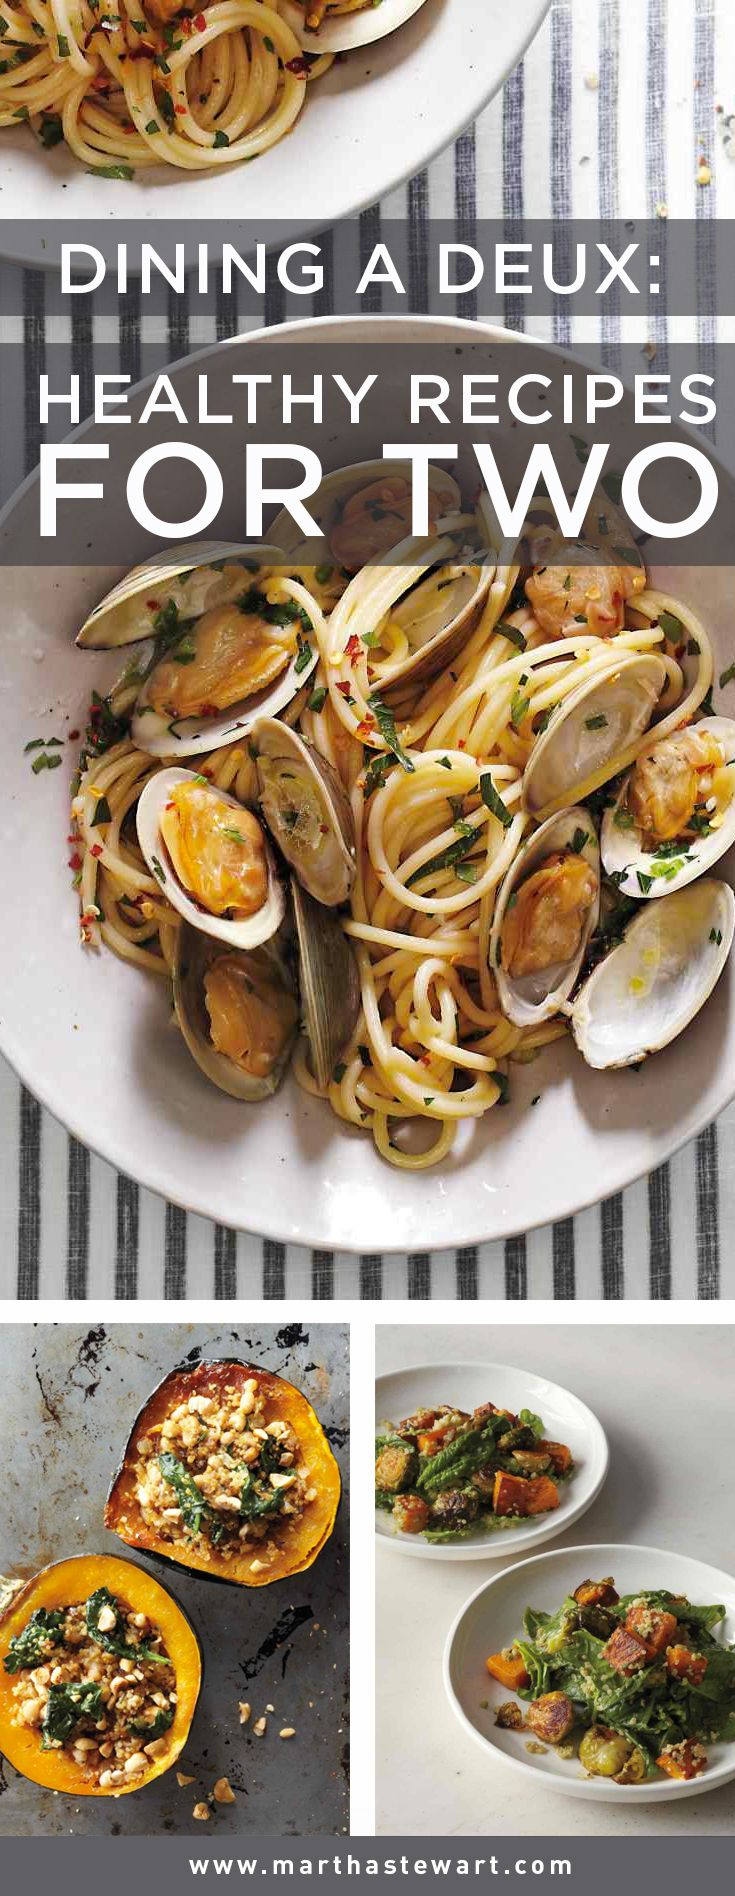 Dining a Deux: Healthy Recipes for Two   Martha Stewart Living - These recipes are healthy and balanced, simple and (mostly) quick, delicious and memorable -- they do it all for two.